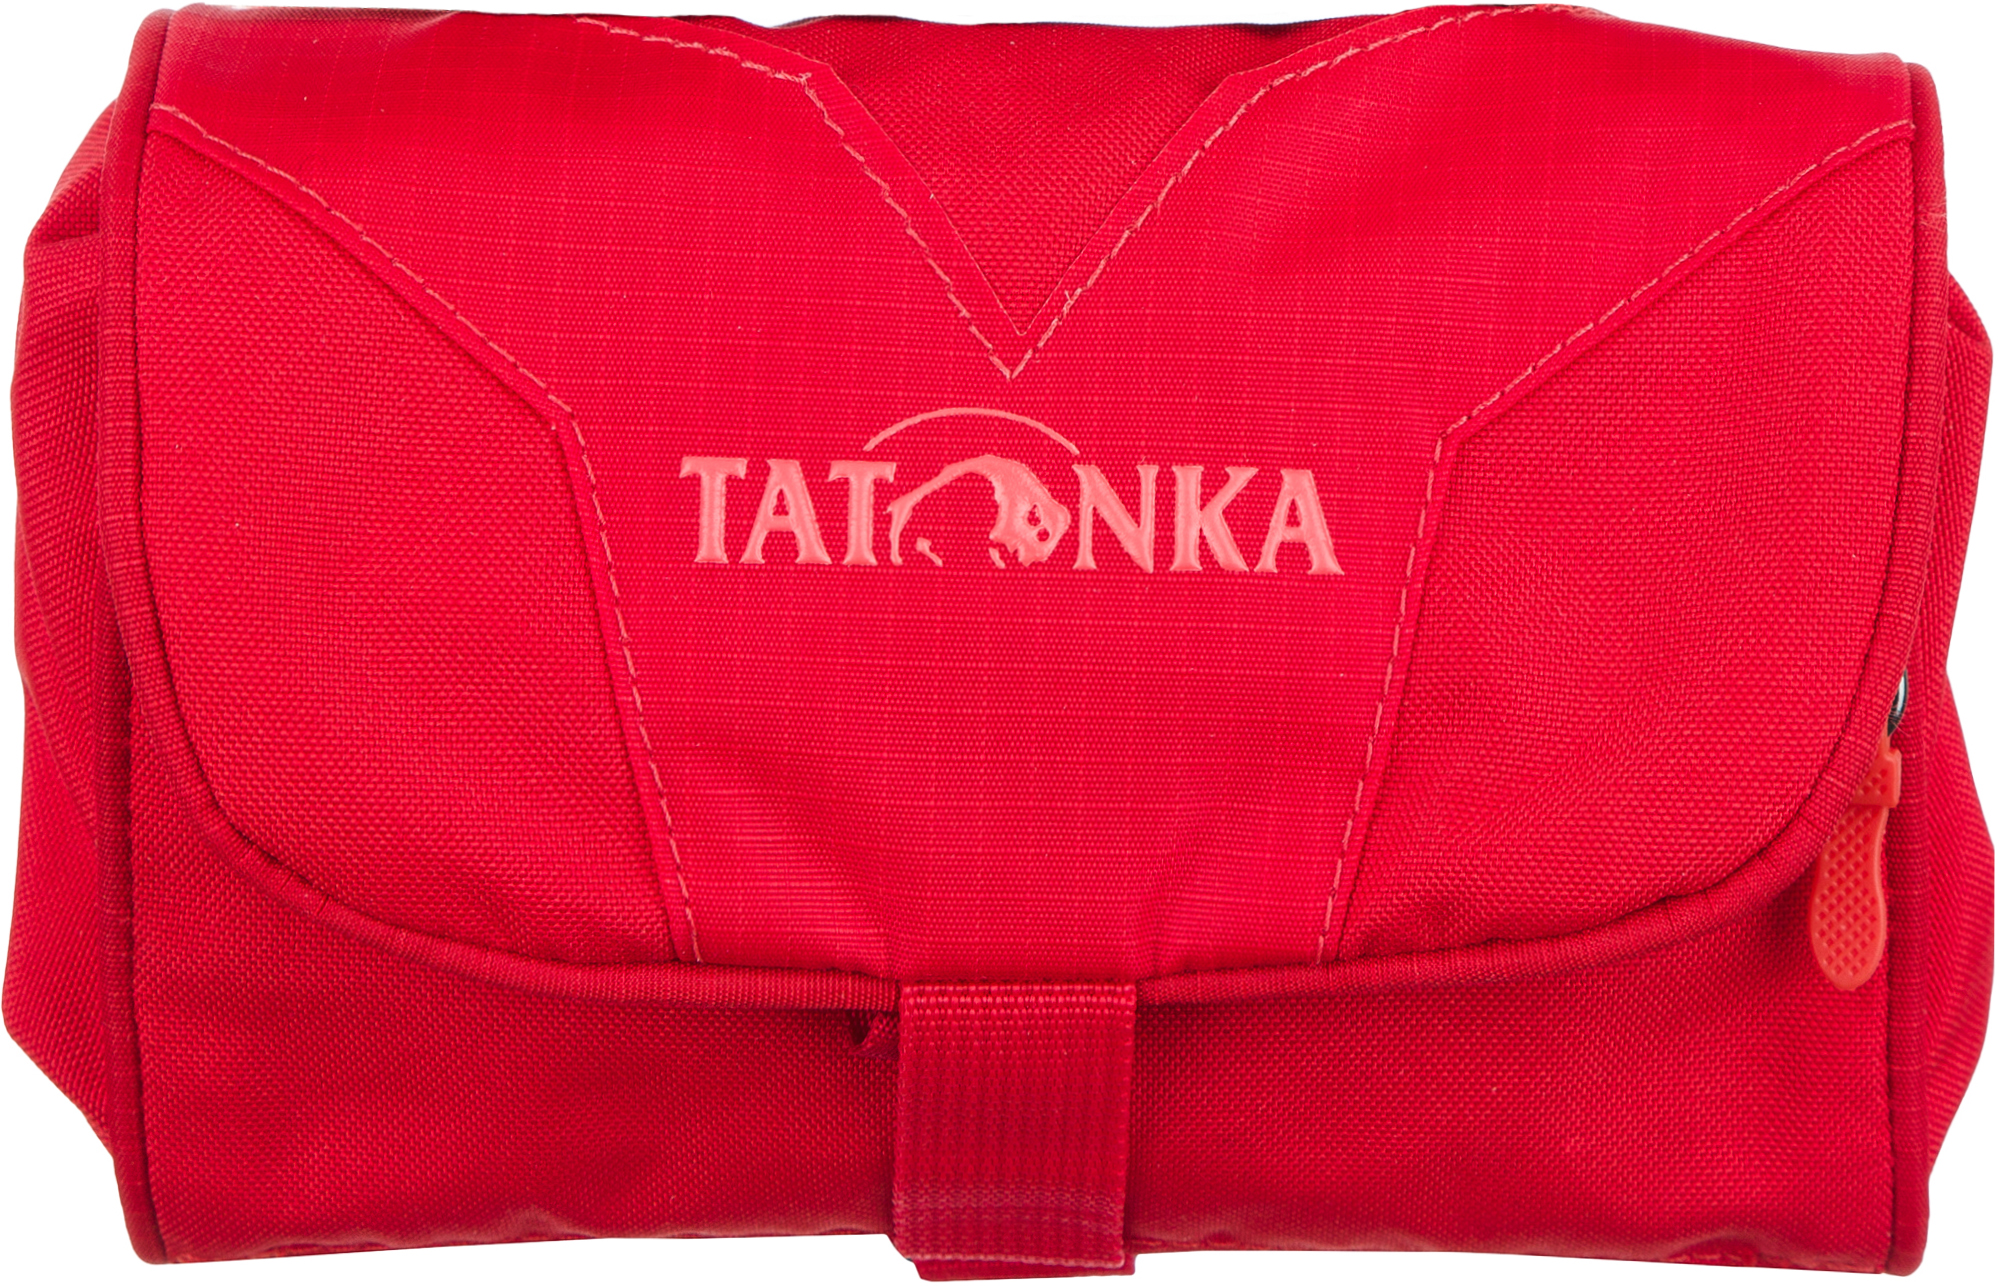 Tatonka Косметичка Tatonka MINI TRAVELCARE кошелек tatonka travel wallet цвет синий 2915 004